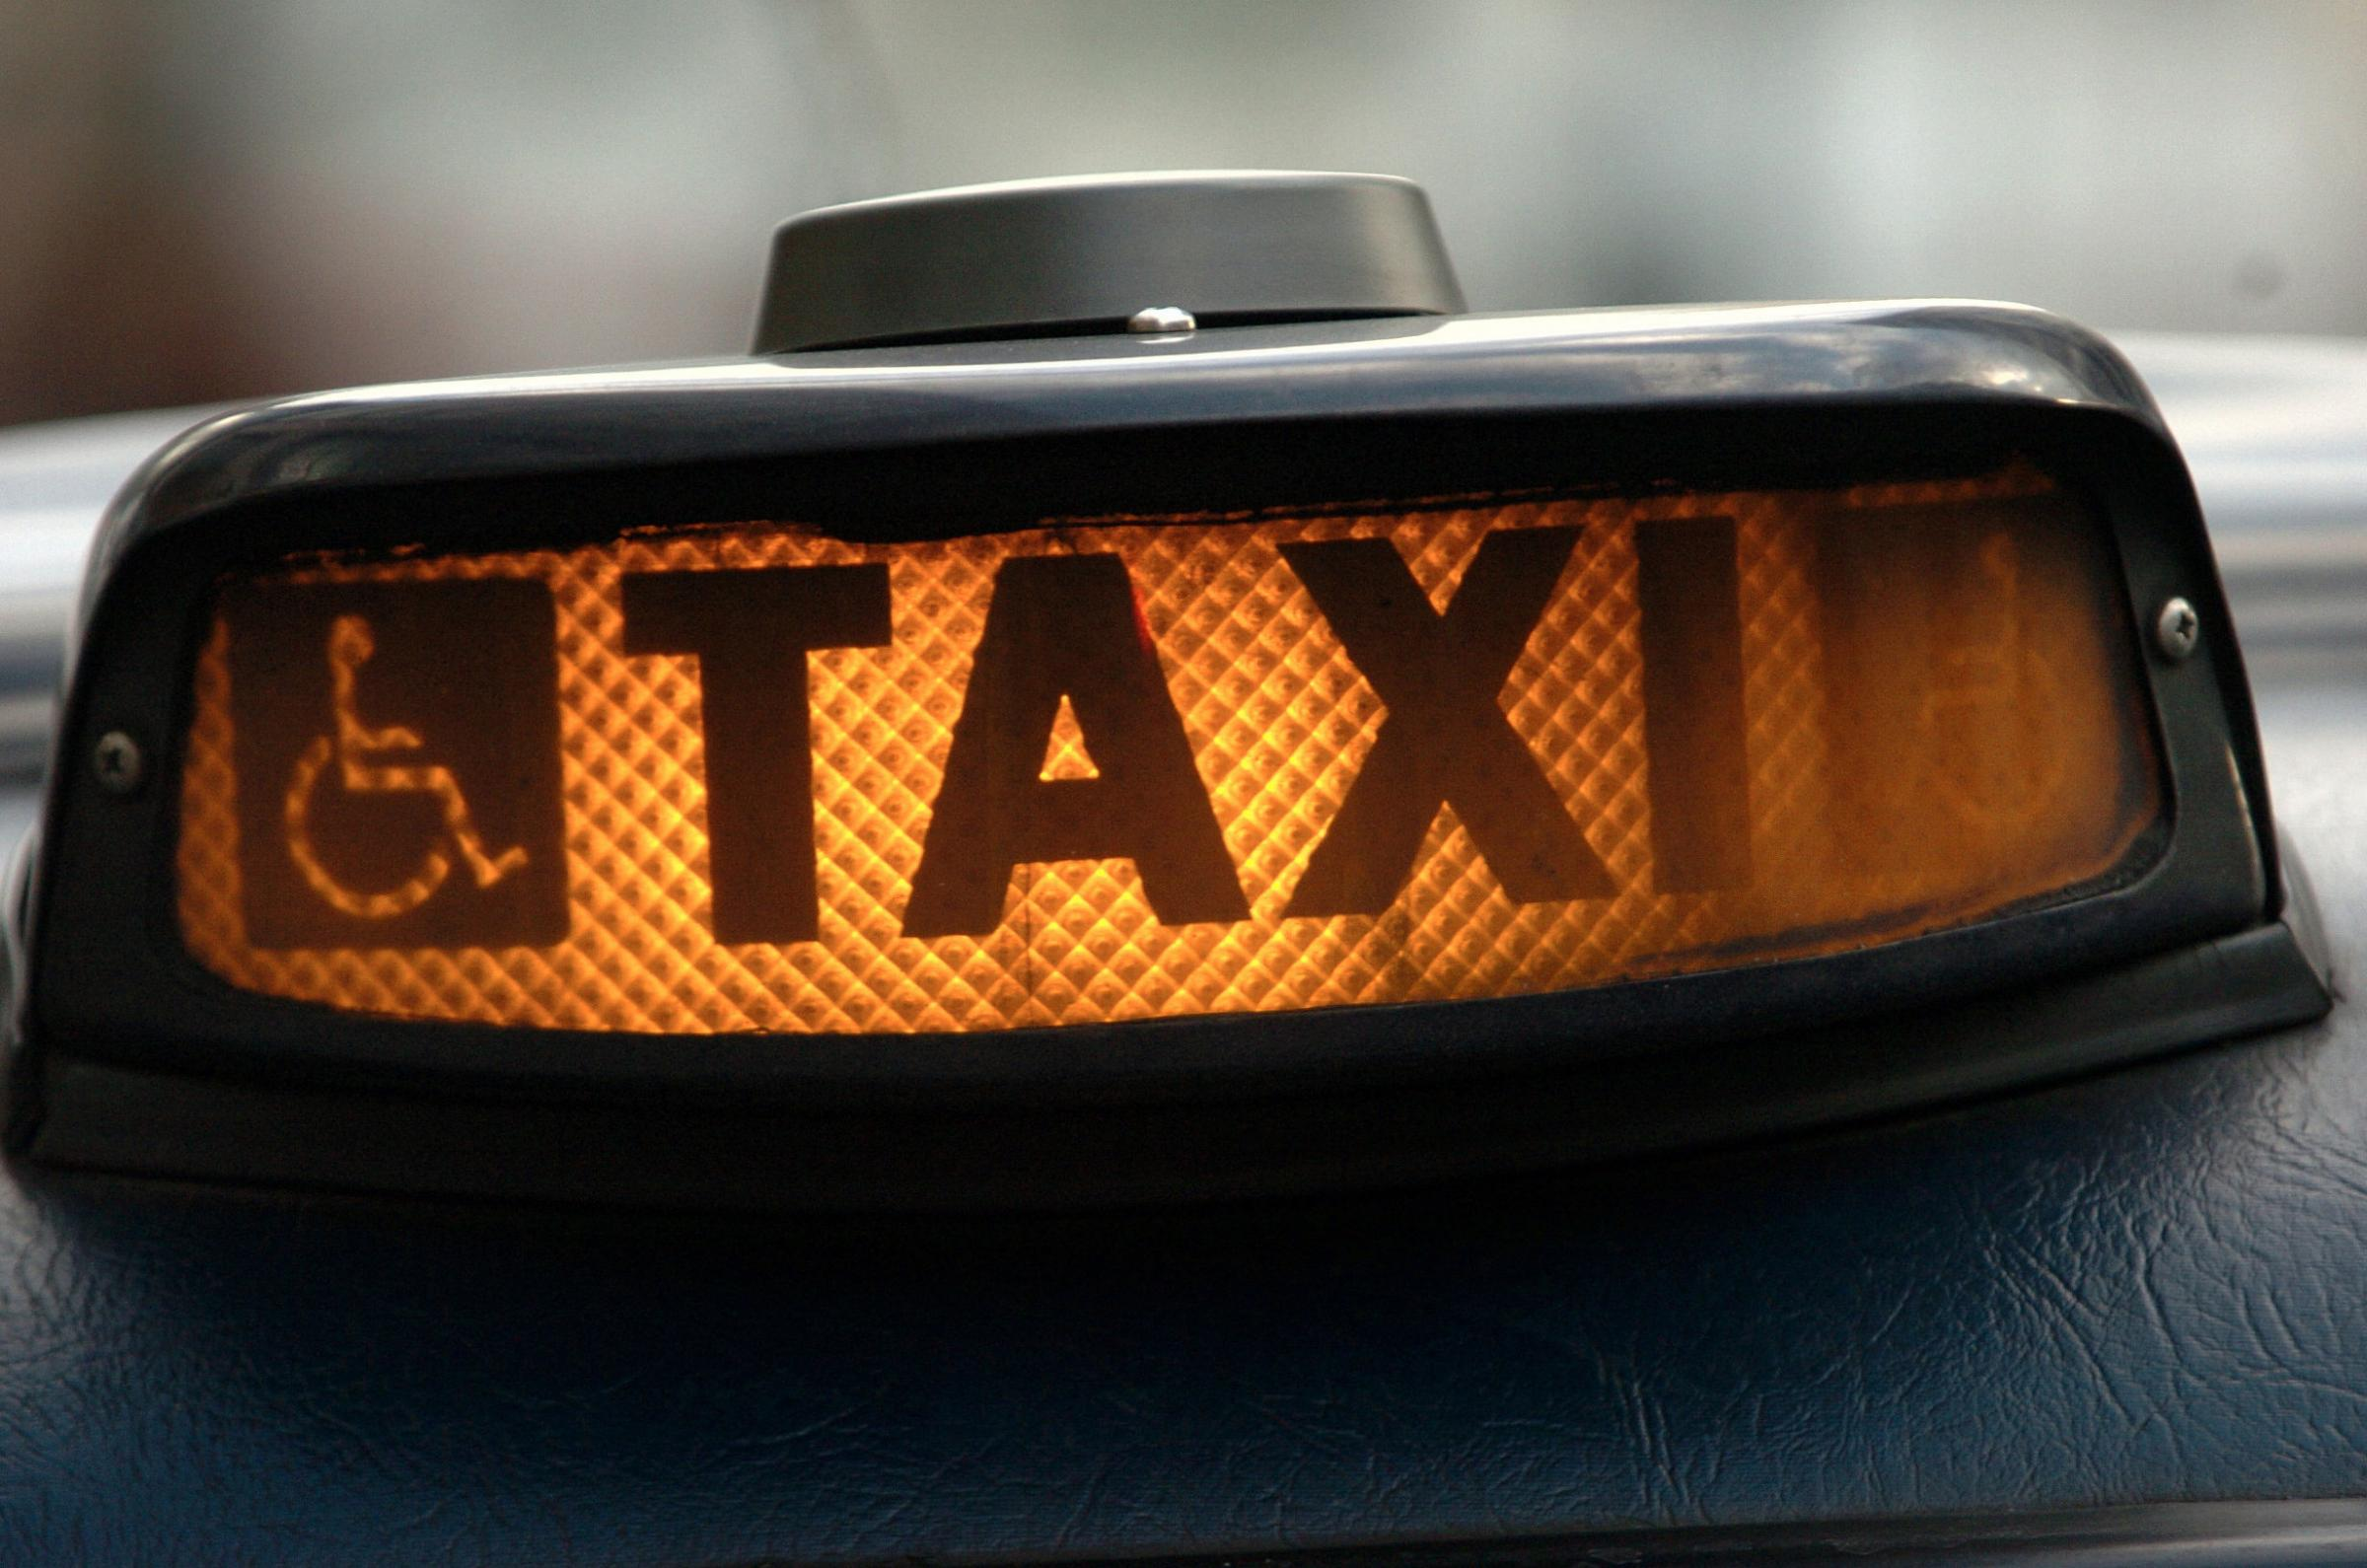 Council says no to 10% taxi fare increase in Malvern - for now